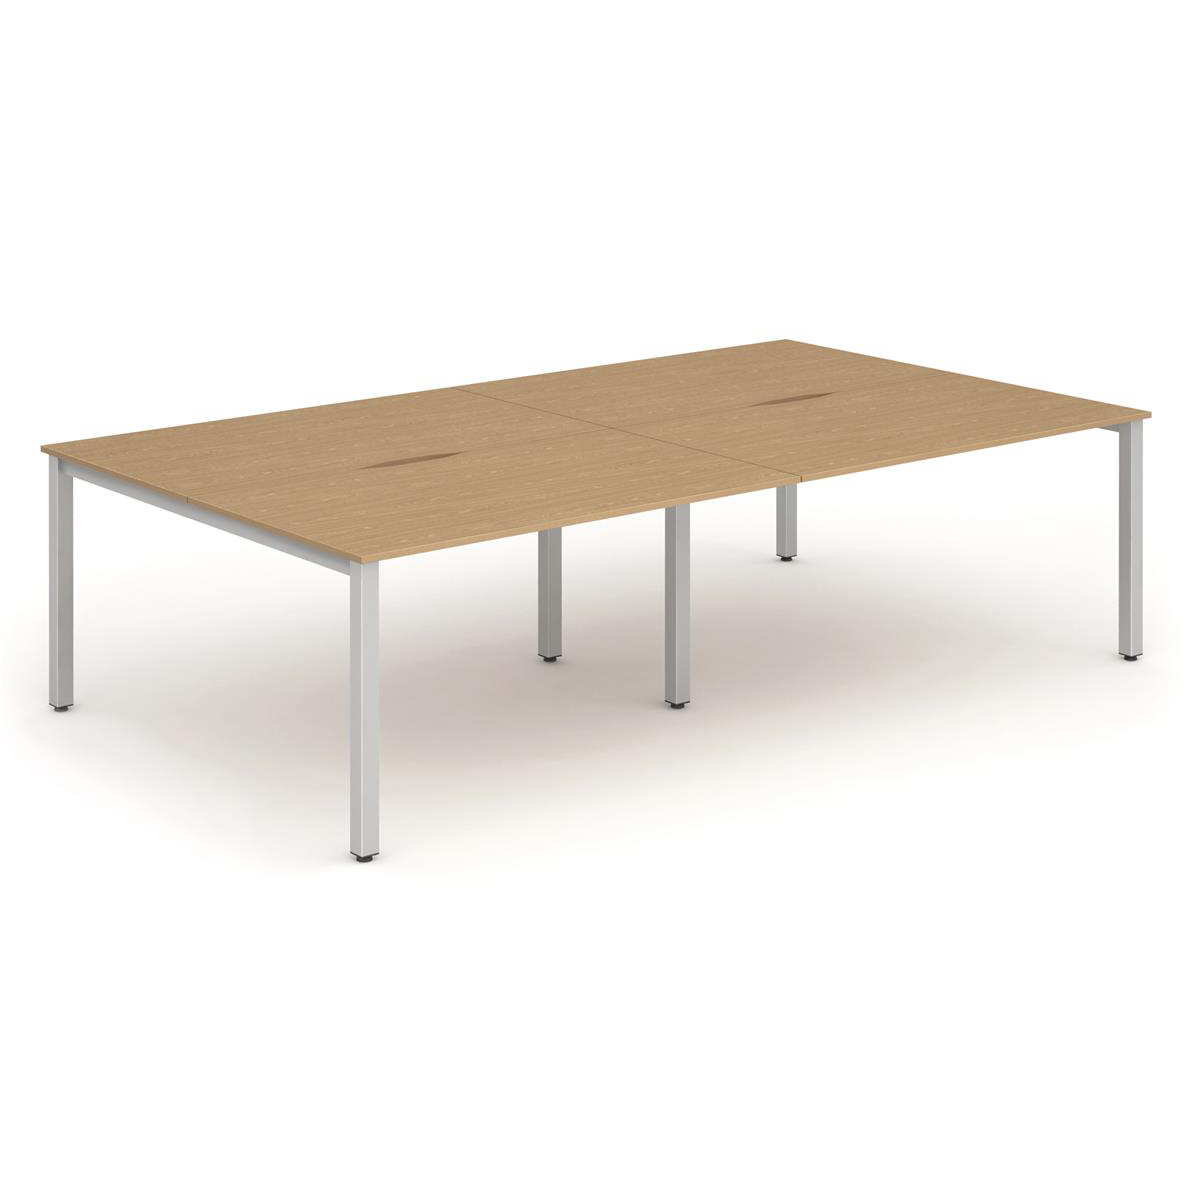 Trexus Bench Desk 4 Person Back to Back Configuration Silver Leg 2800x1600mm Oak Ref BE253